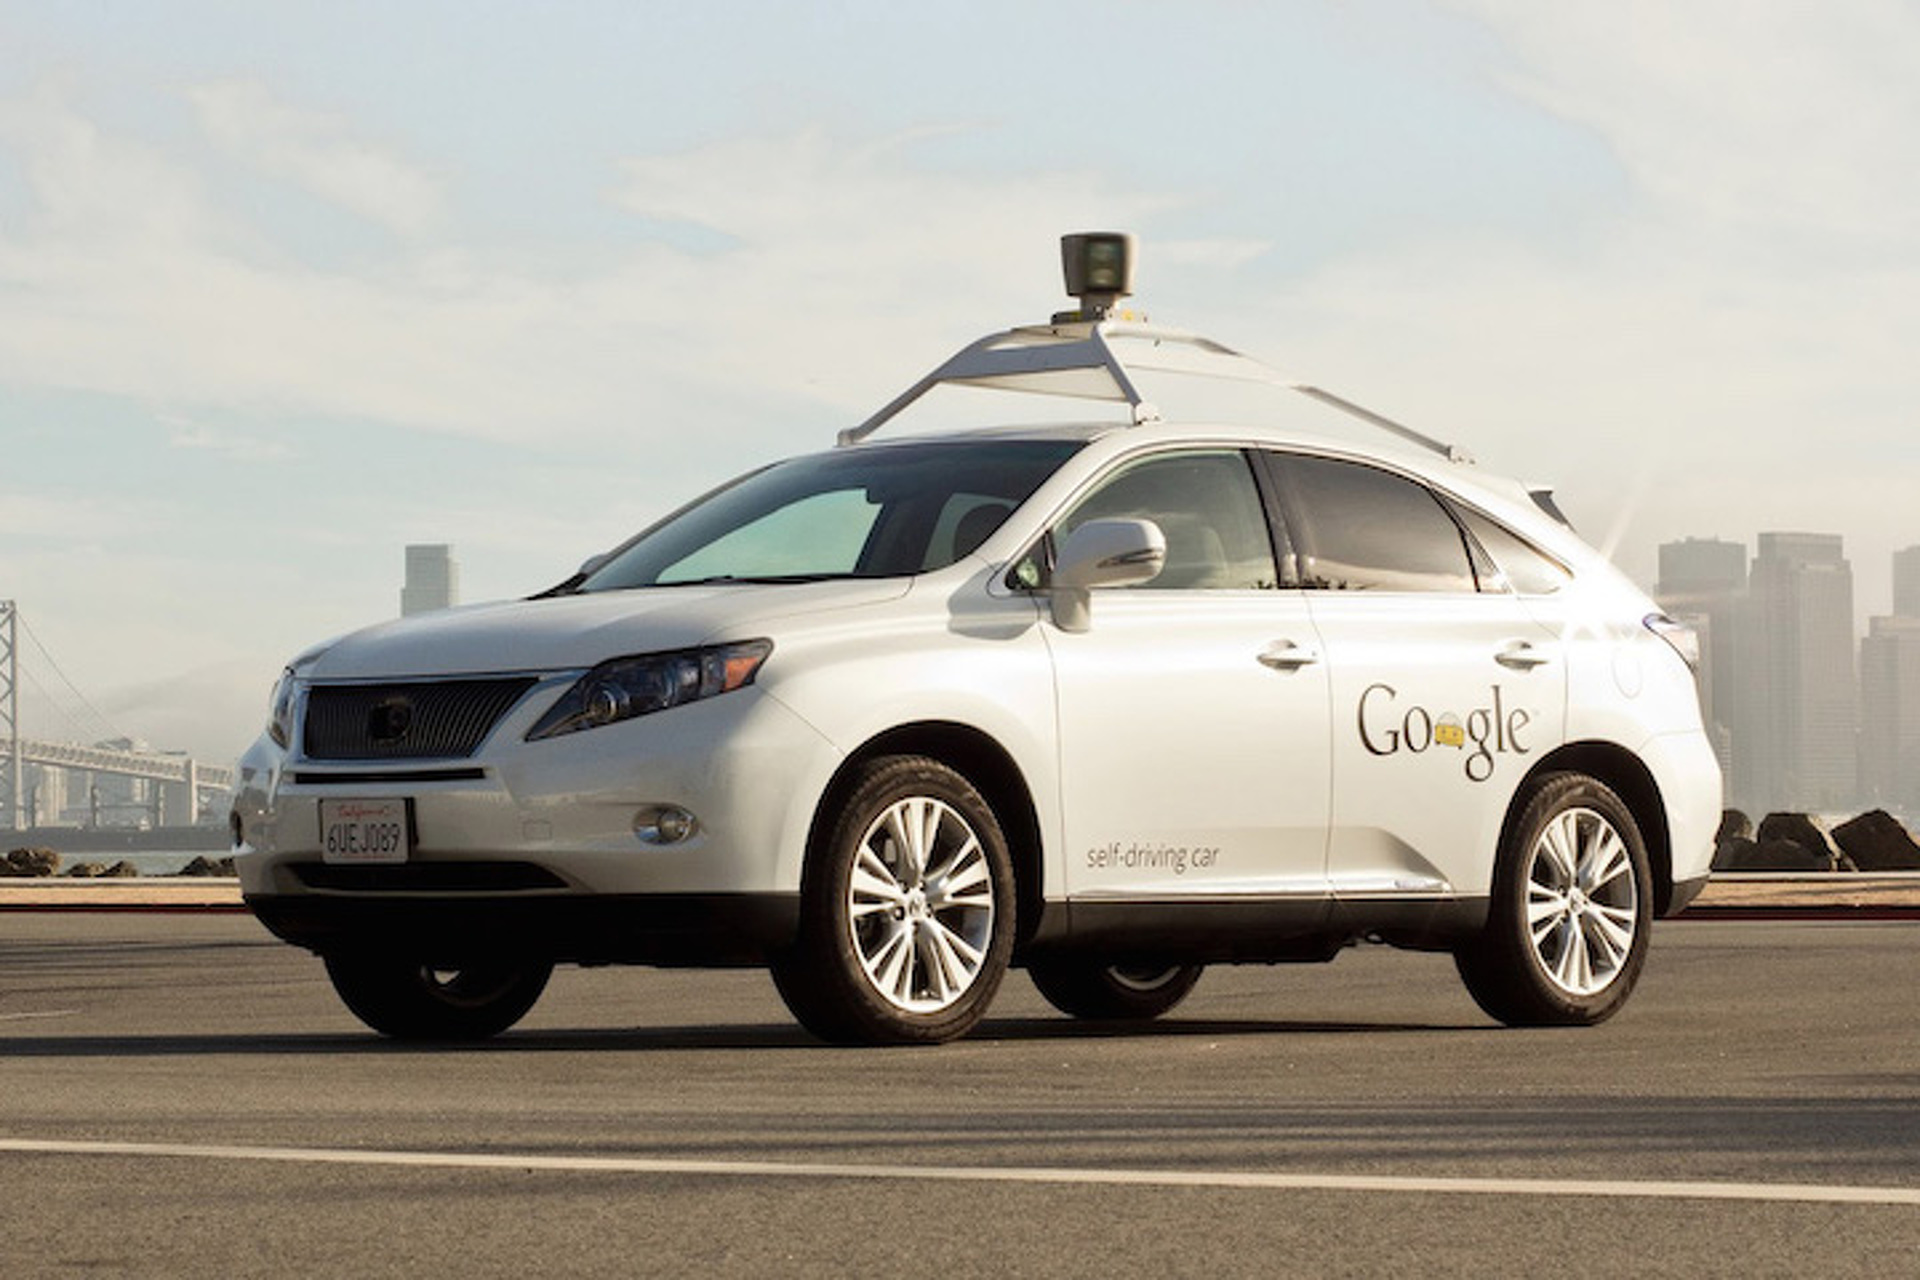 Driverless Cars Bring Insurance Antitrust Issues